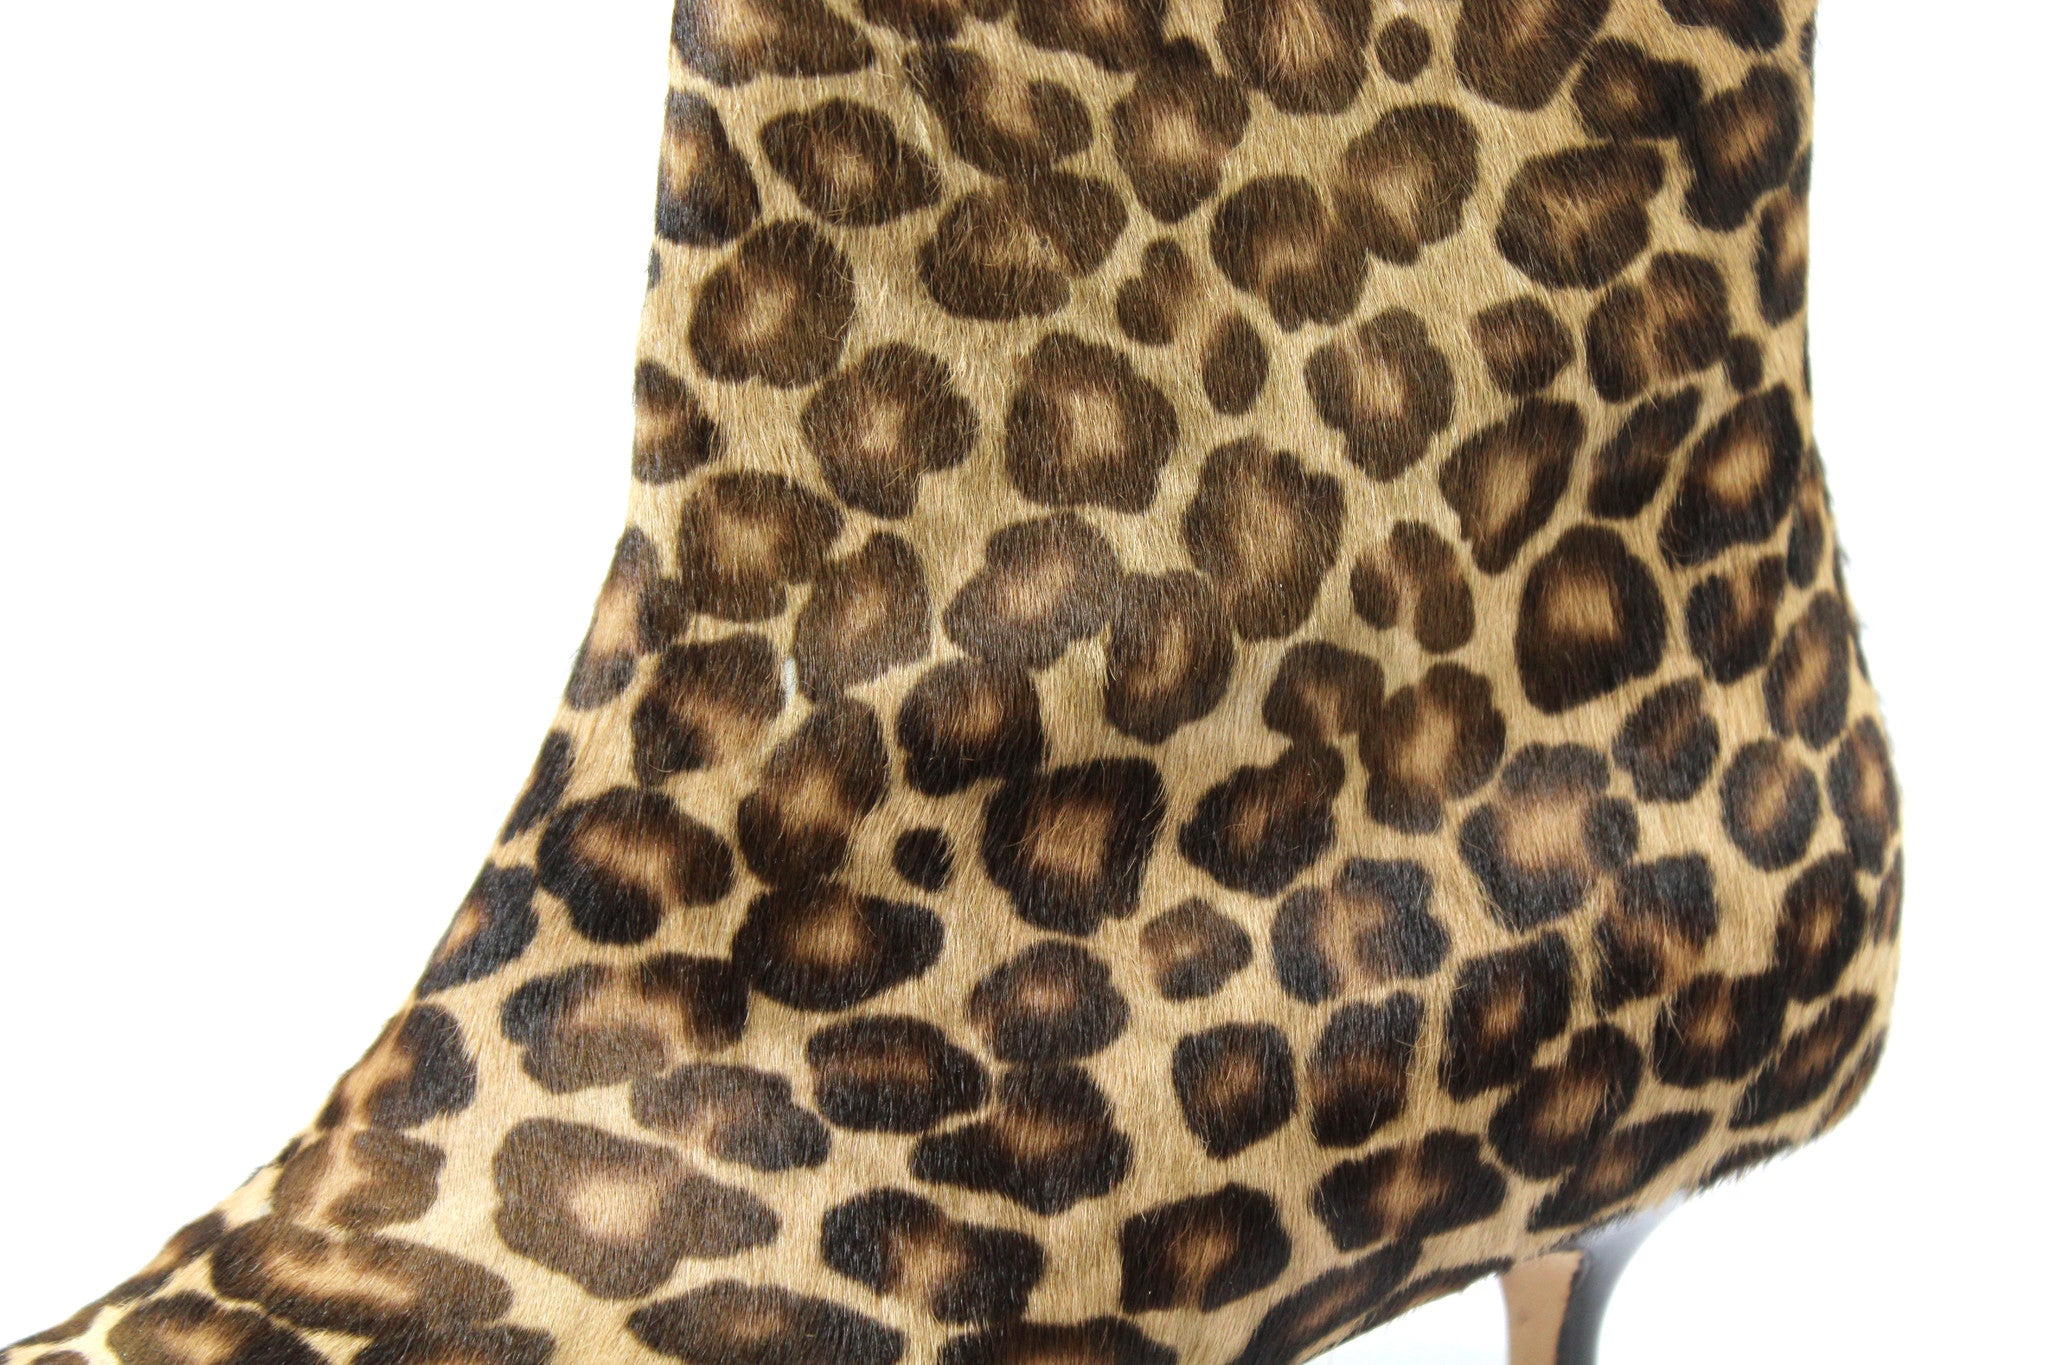 Manolo Blahnik Leopard Calf Hair Ankle Boots (Size 38) - Encore Consignment - 7